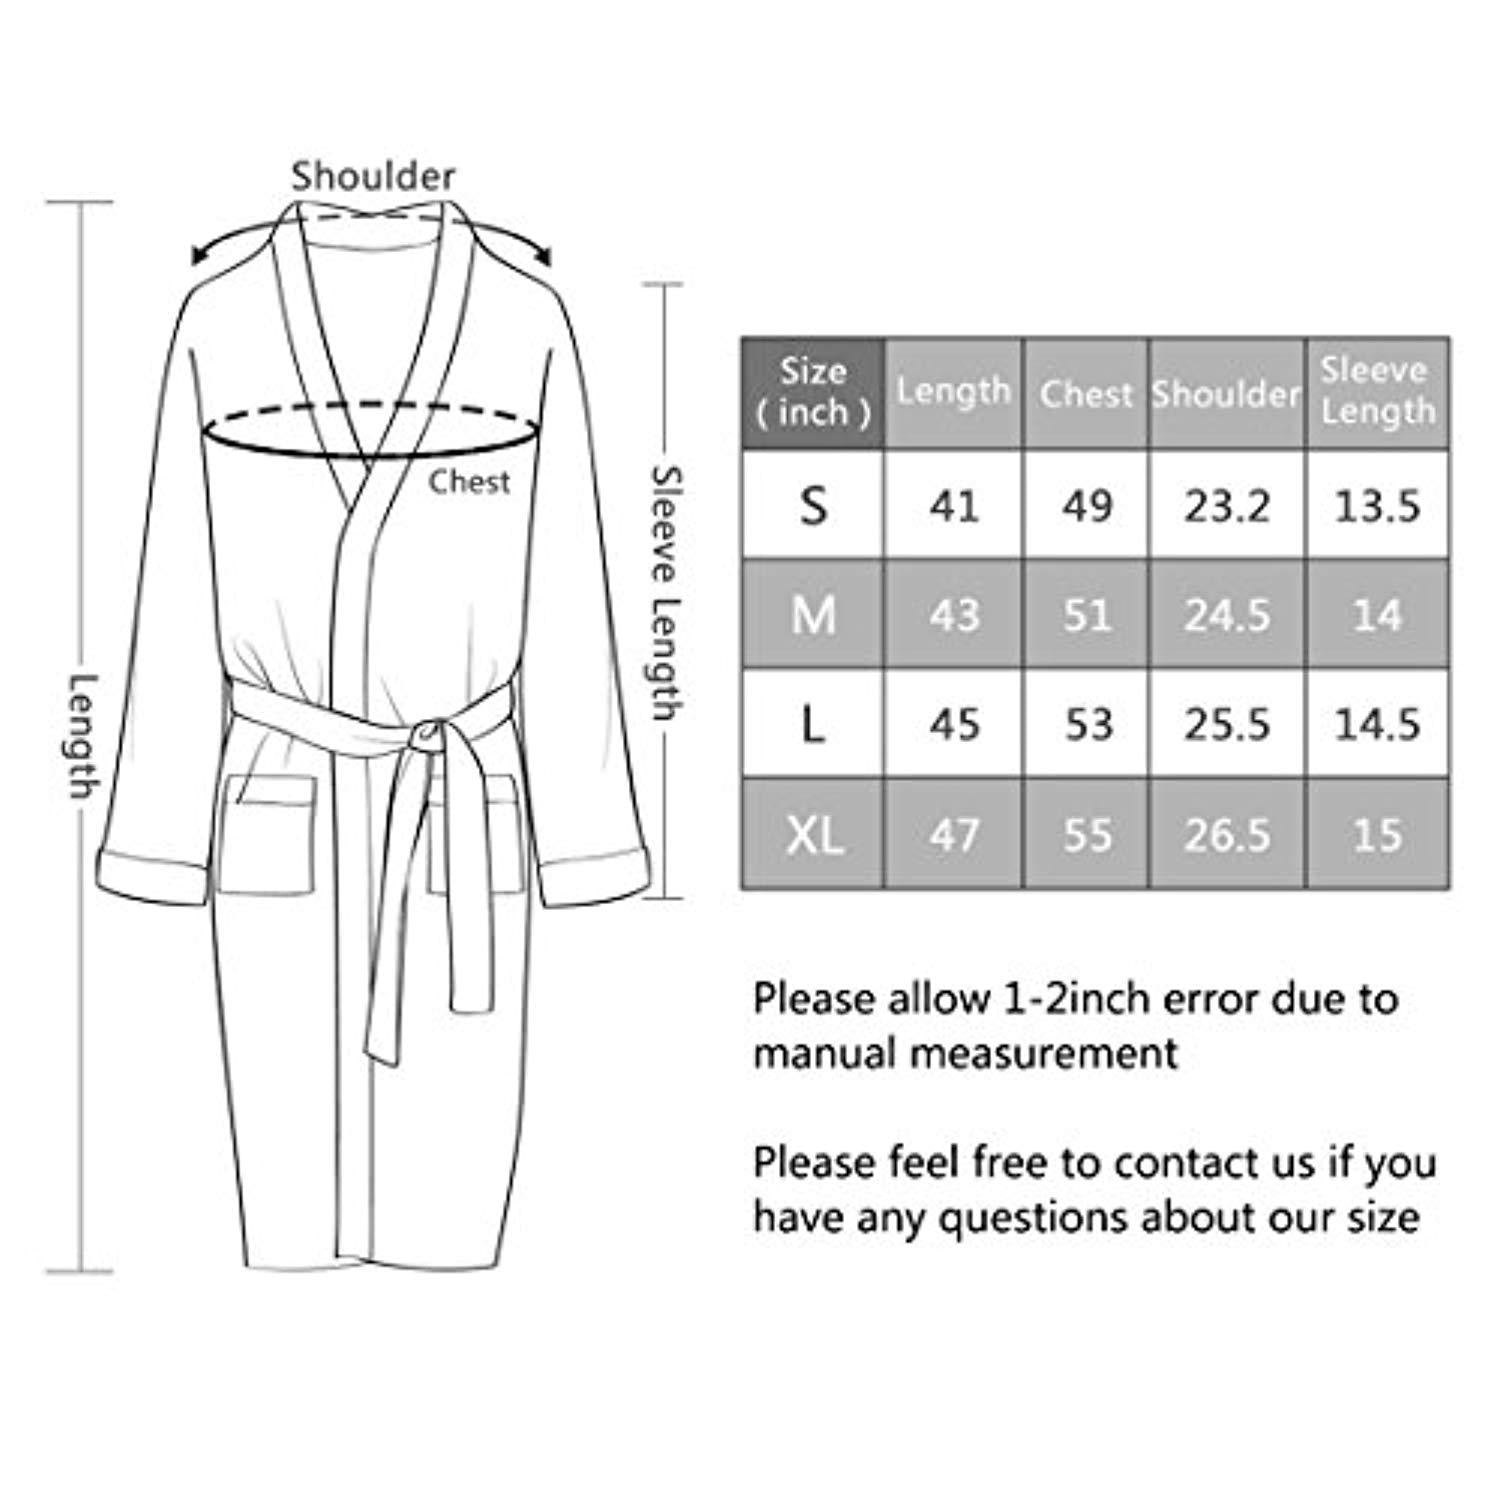 Jearey Mens Kimono Robe Cotton Waffle Spa Bathrobe Lightweight Soft Knee Length Sleepwear with Pockets